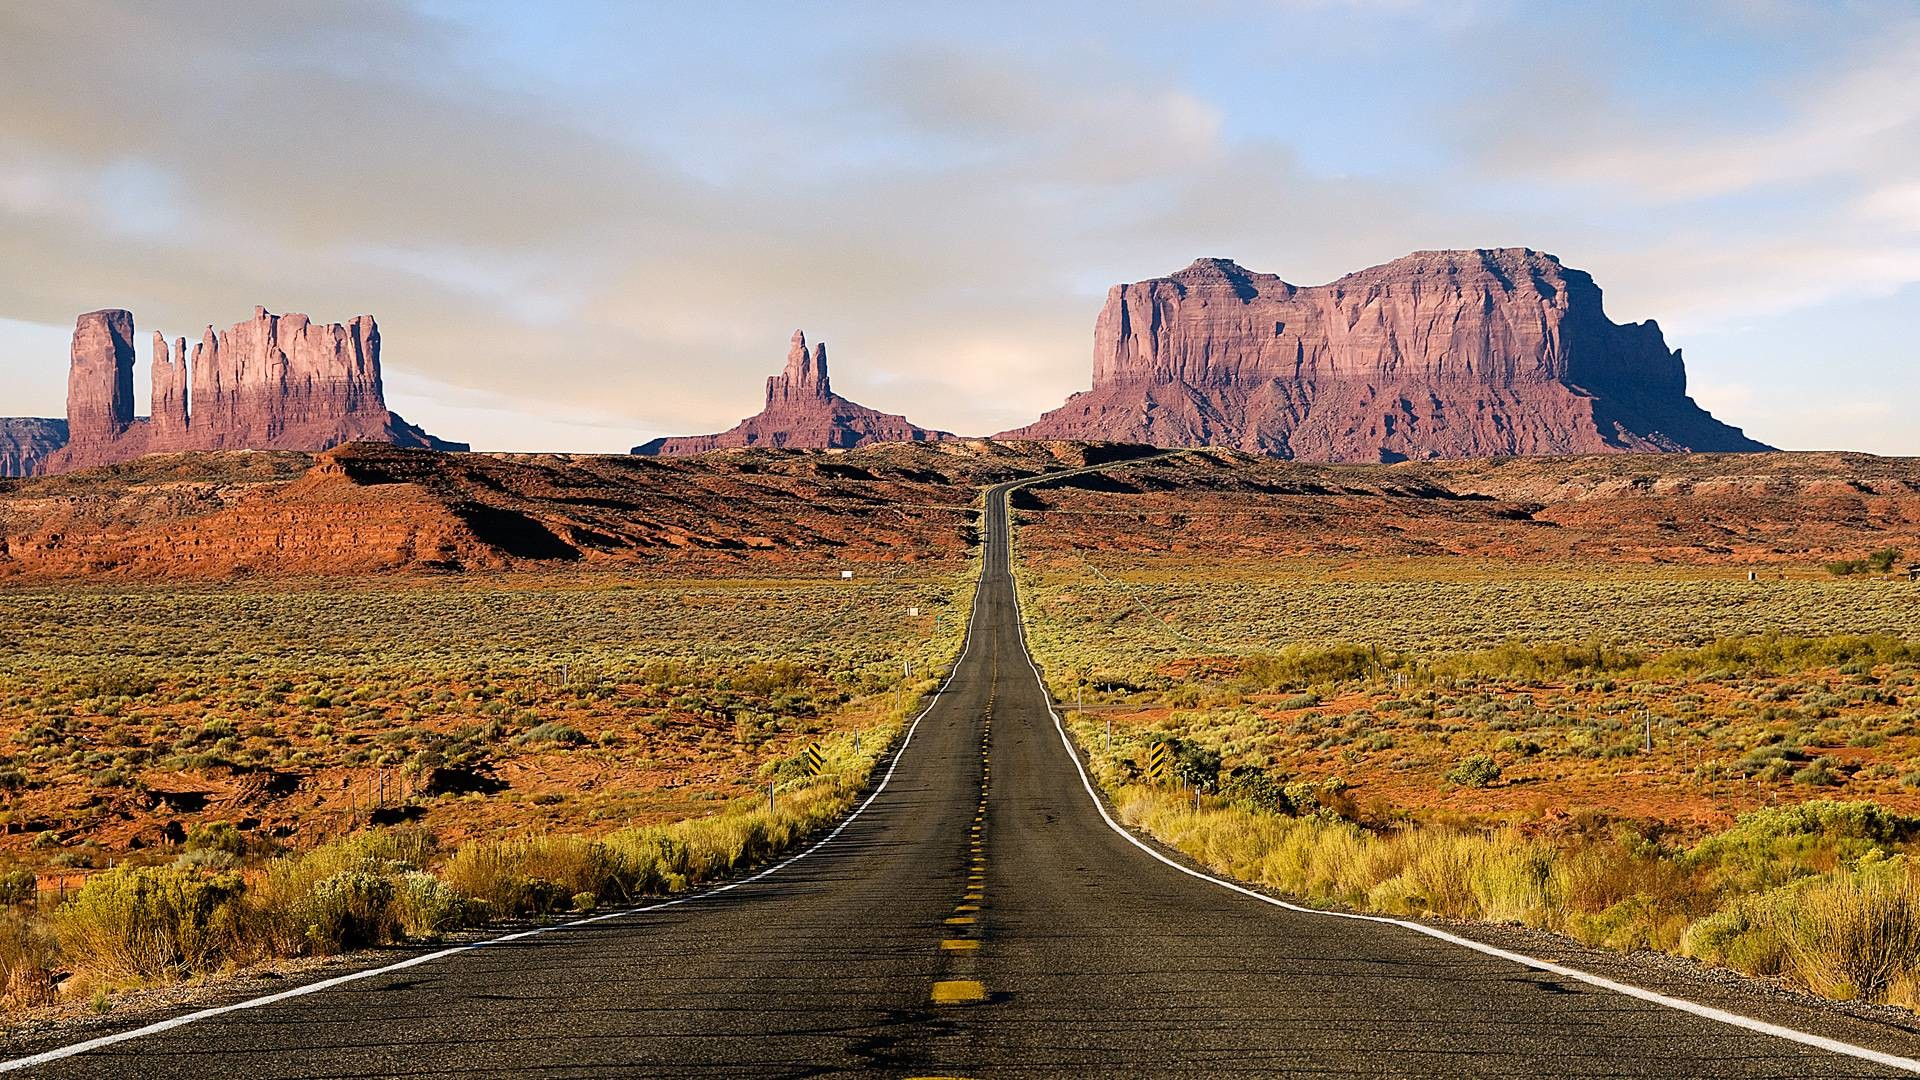 Free Route 66 wallpaper | United States of America wallpapers